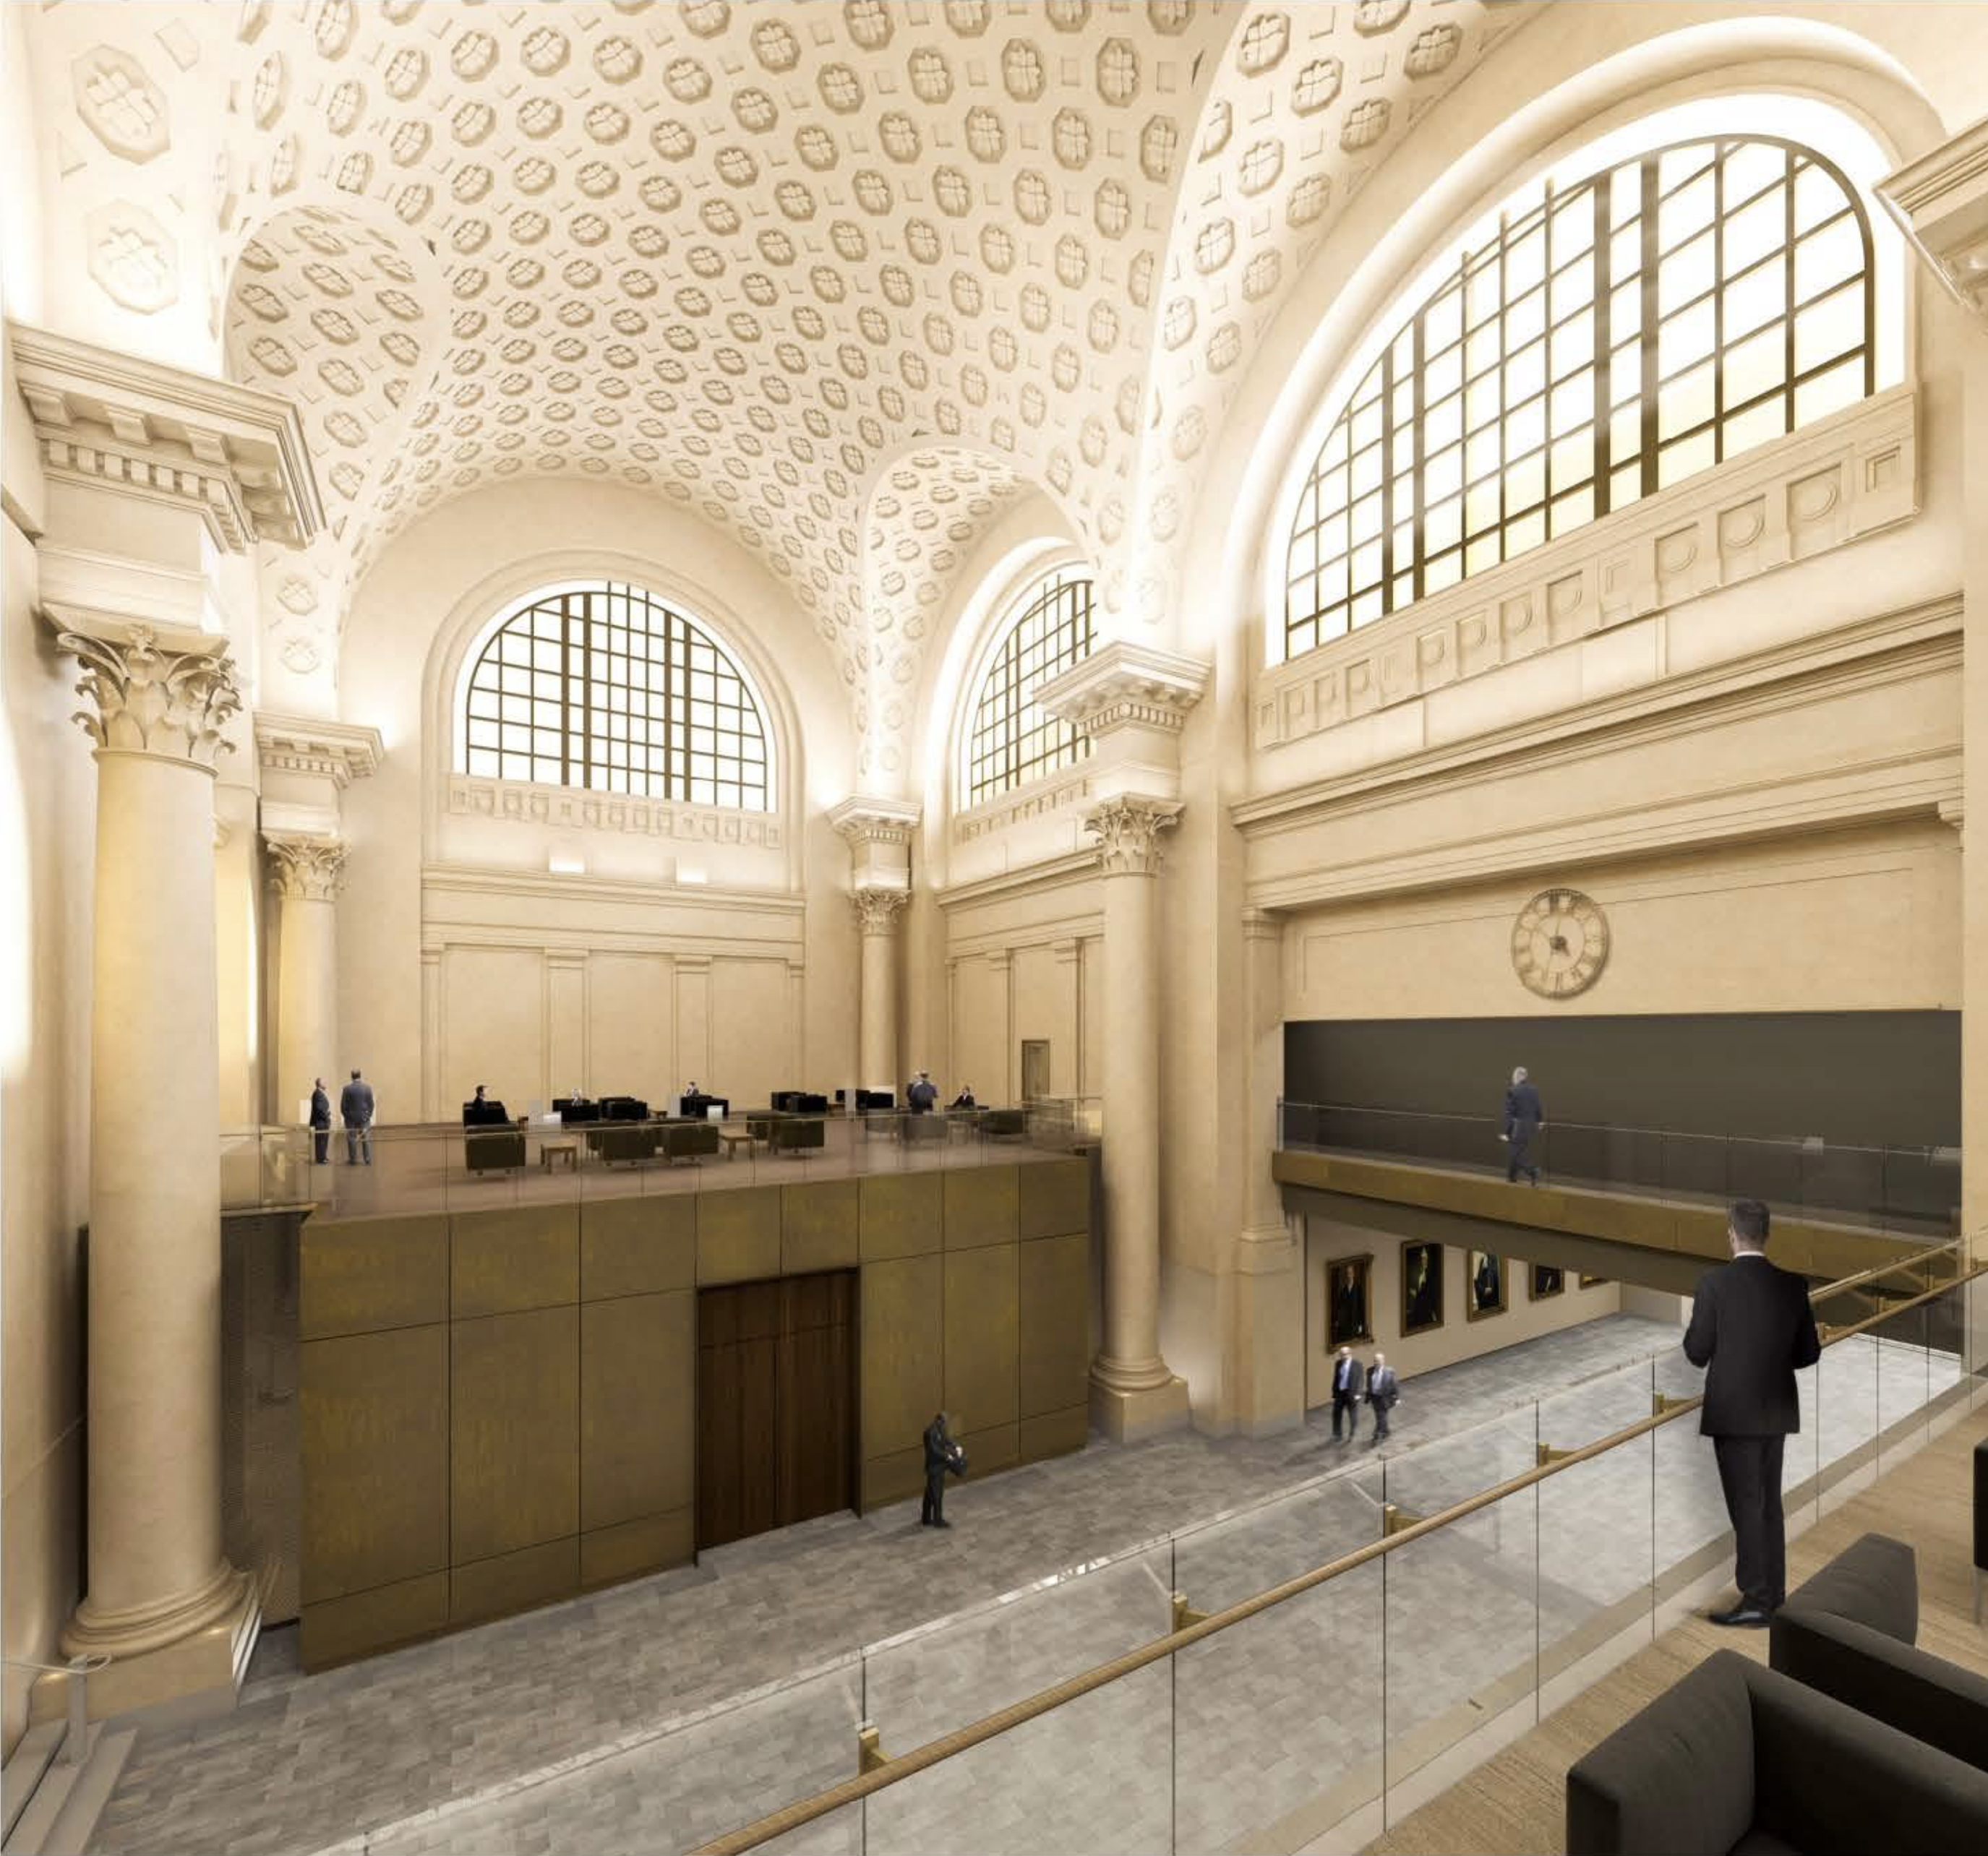 Architects have incorporated many of the architectural features that were typical of an early 1900s train station, such as vaulted ceilings, massive columns and large semicircular windows, into the design for the Senate's temporary home.